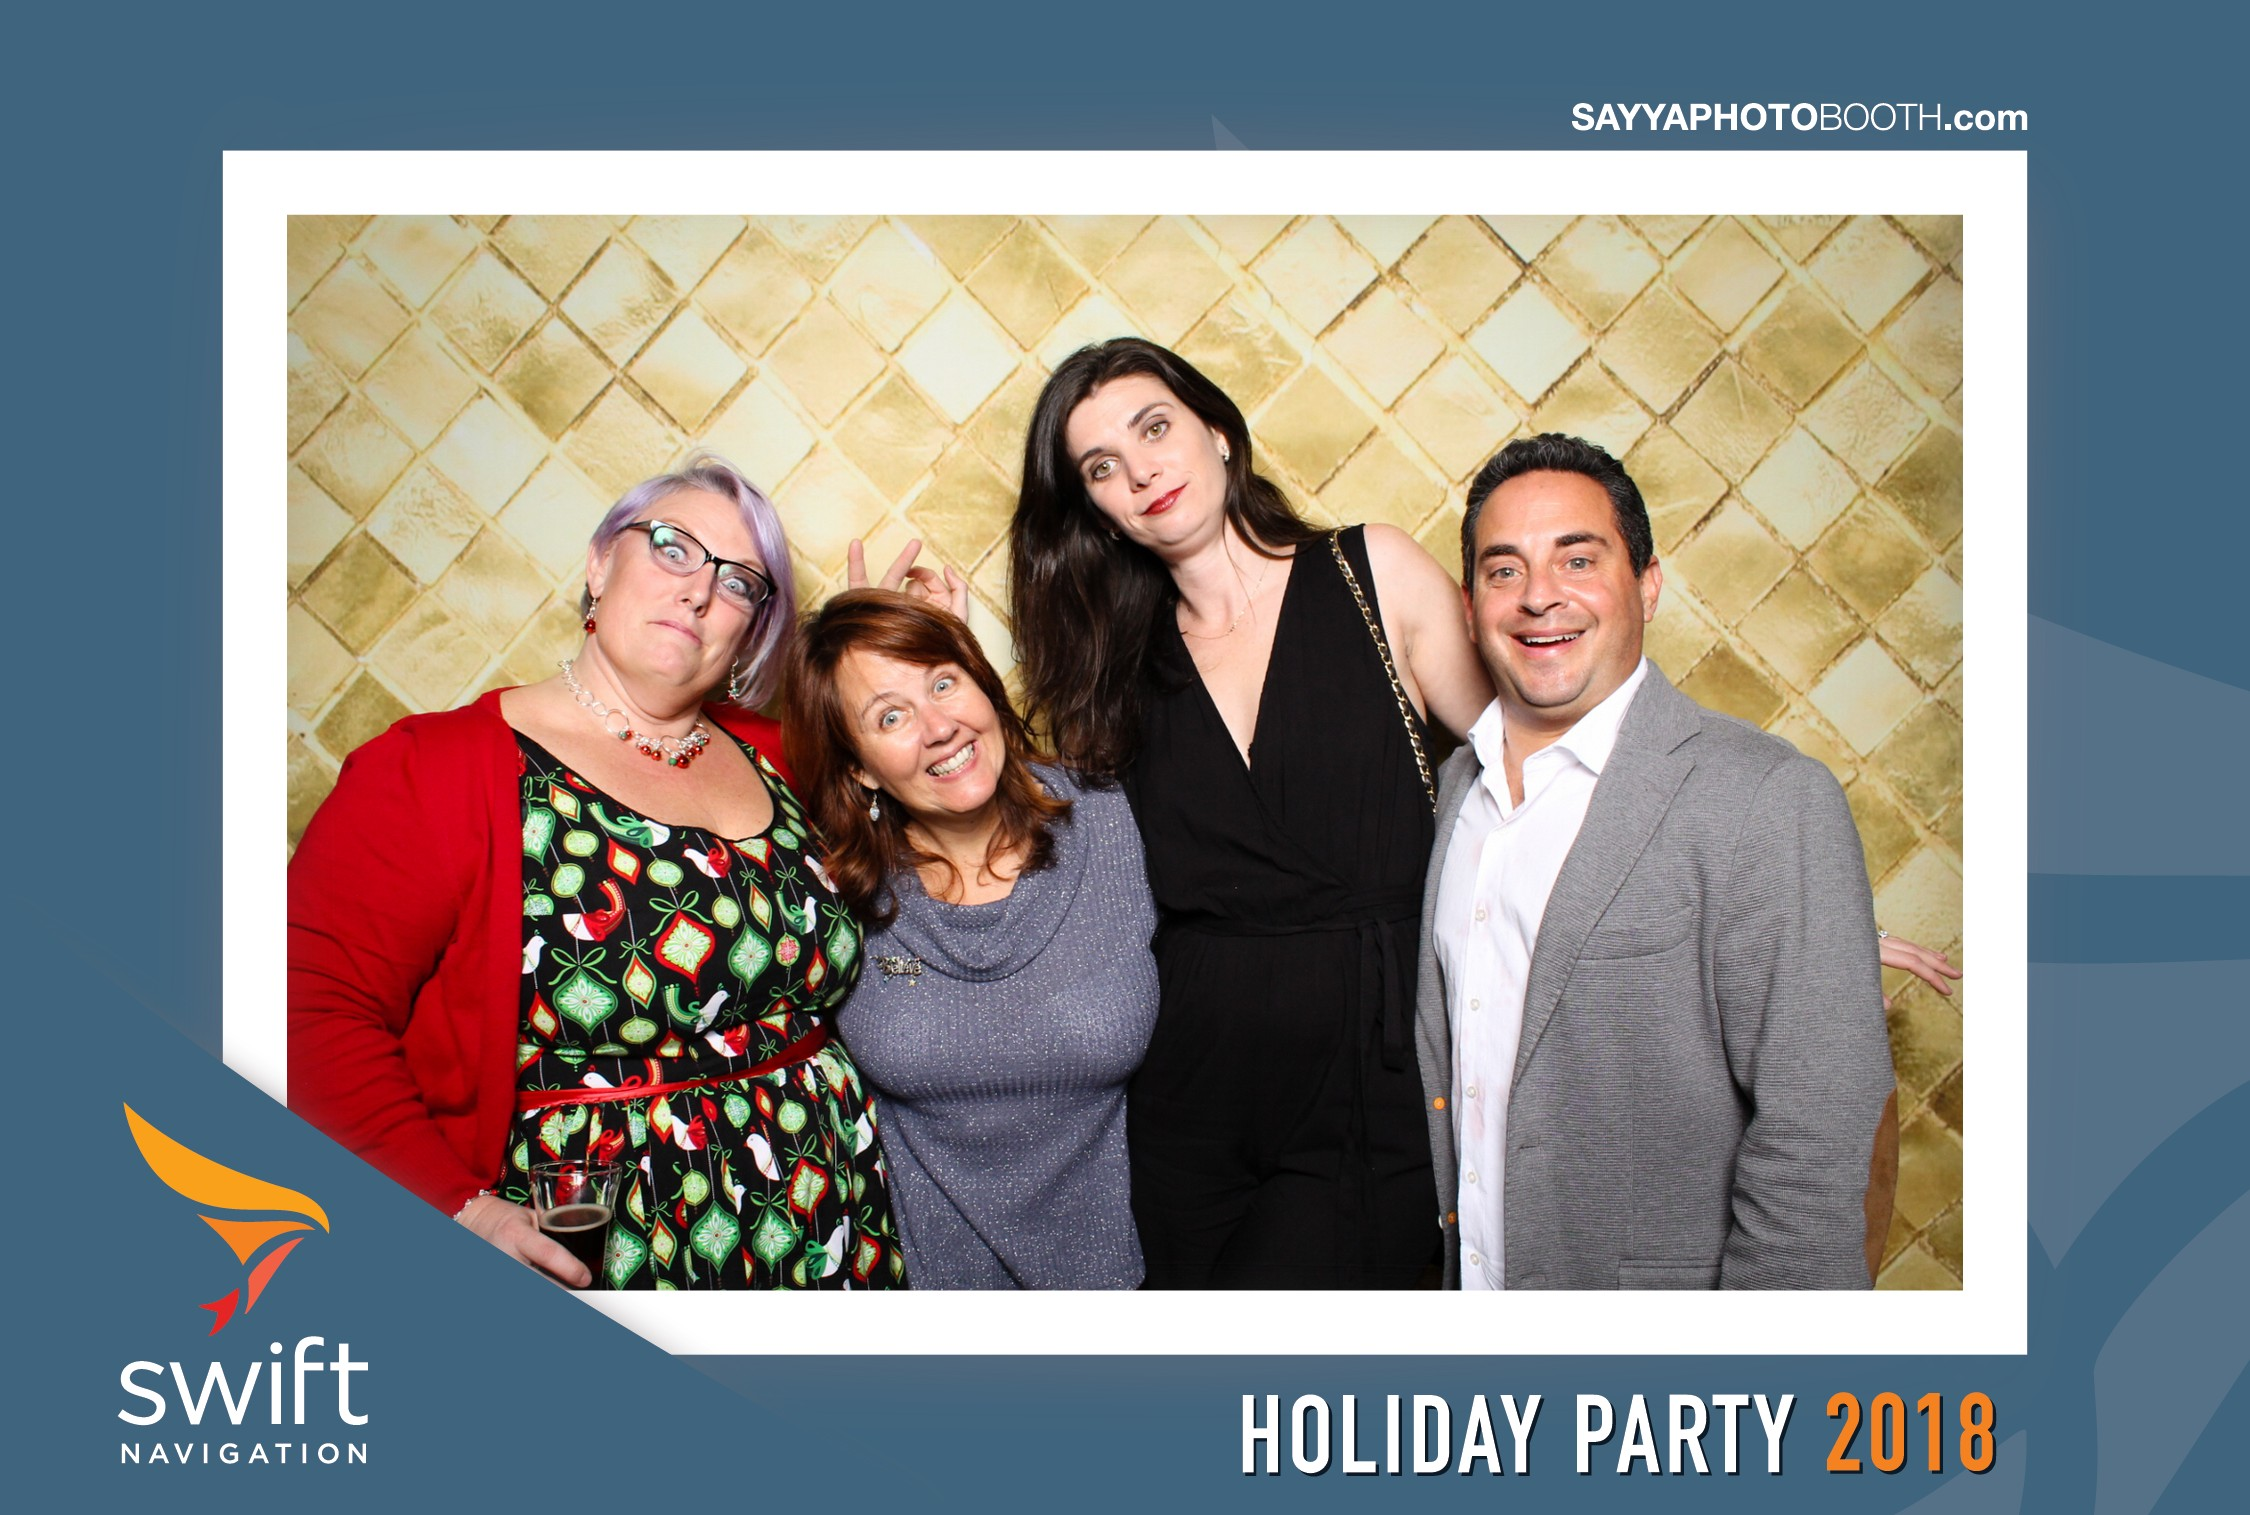 Swift Holiday Party